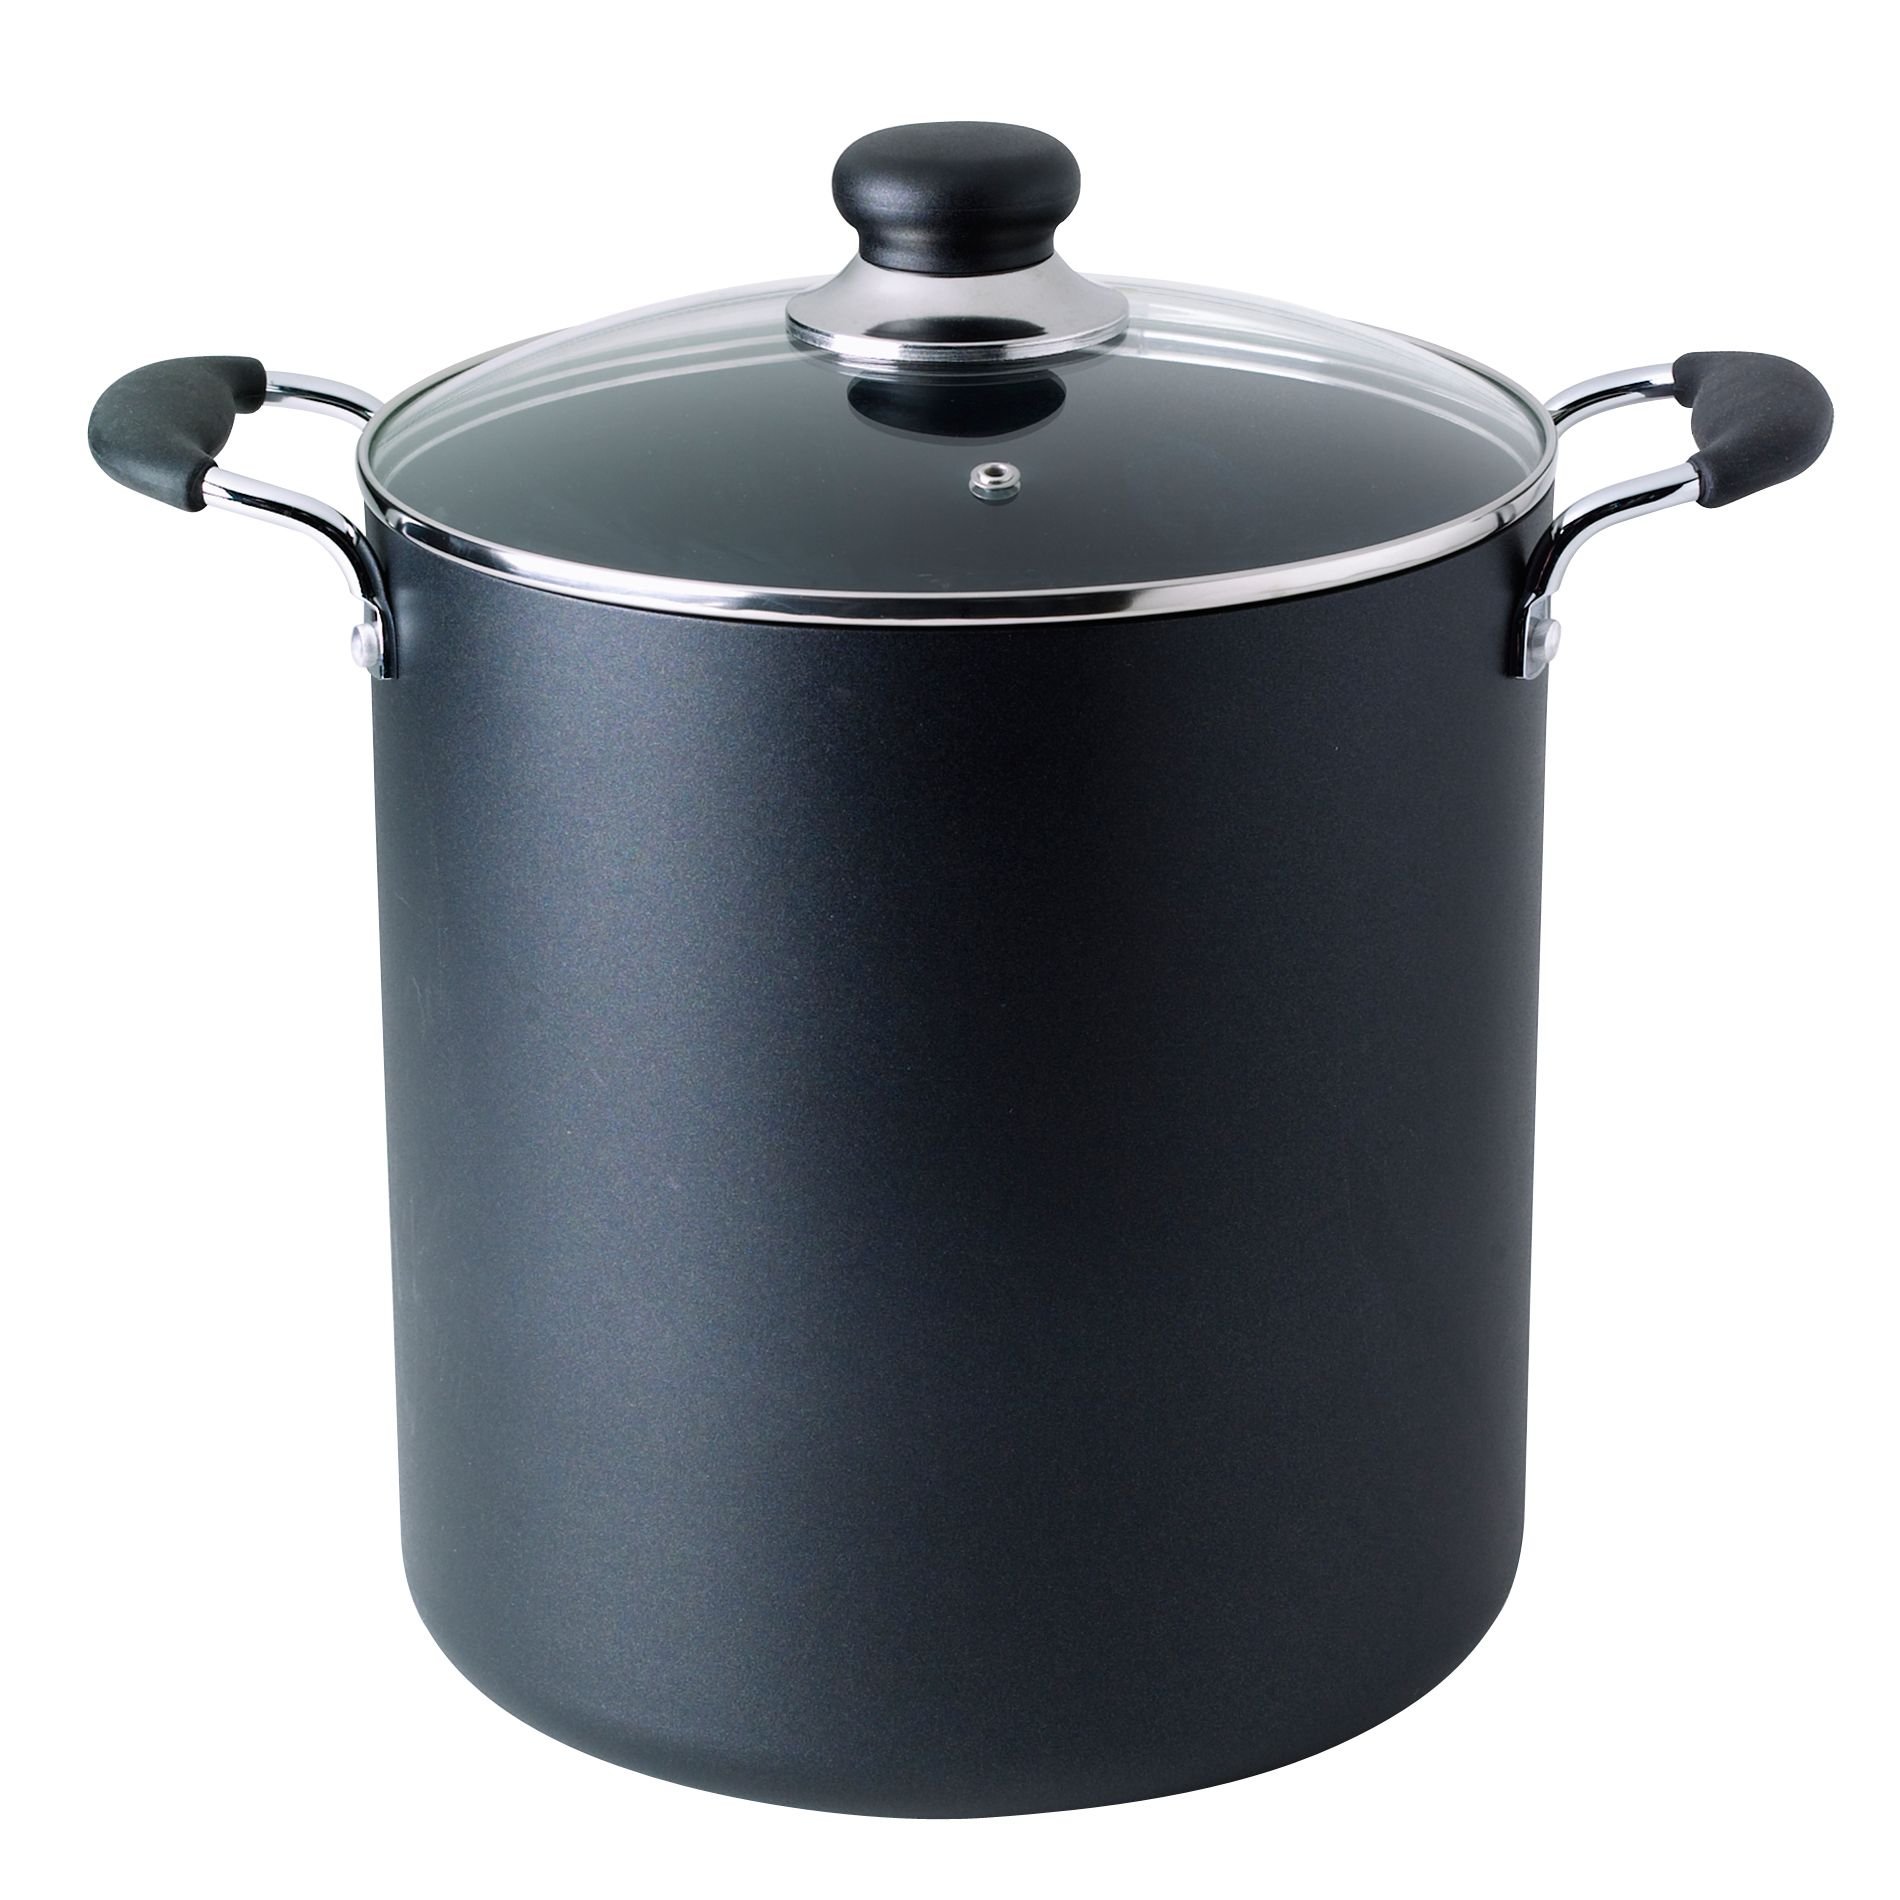 T-fal Stick Stock Pot Black 12 Quart